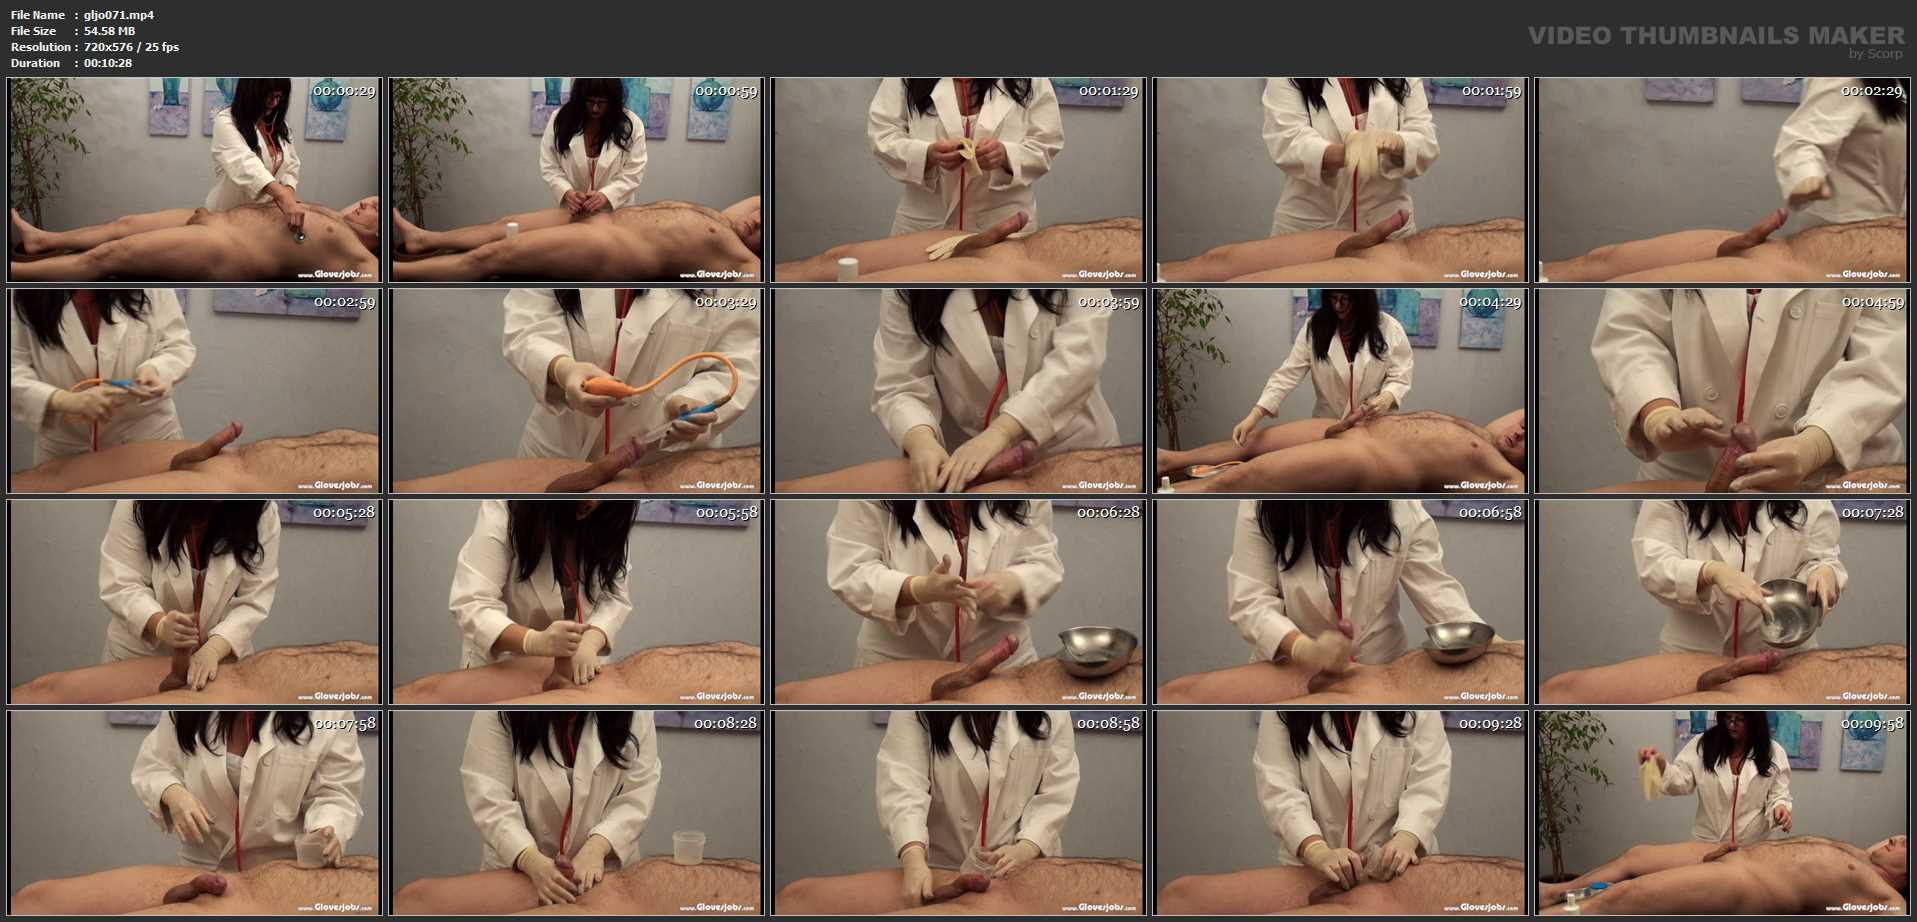 Medical Gloved Handjob by Miss Doctor - GLOVESJOBS - SD/576p/MP4